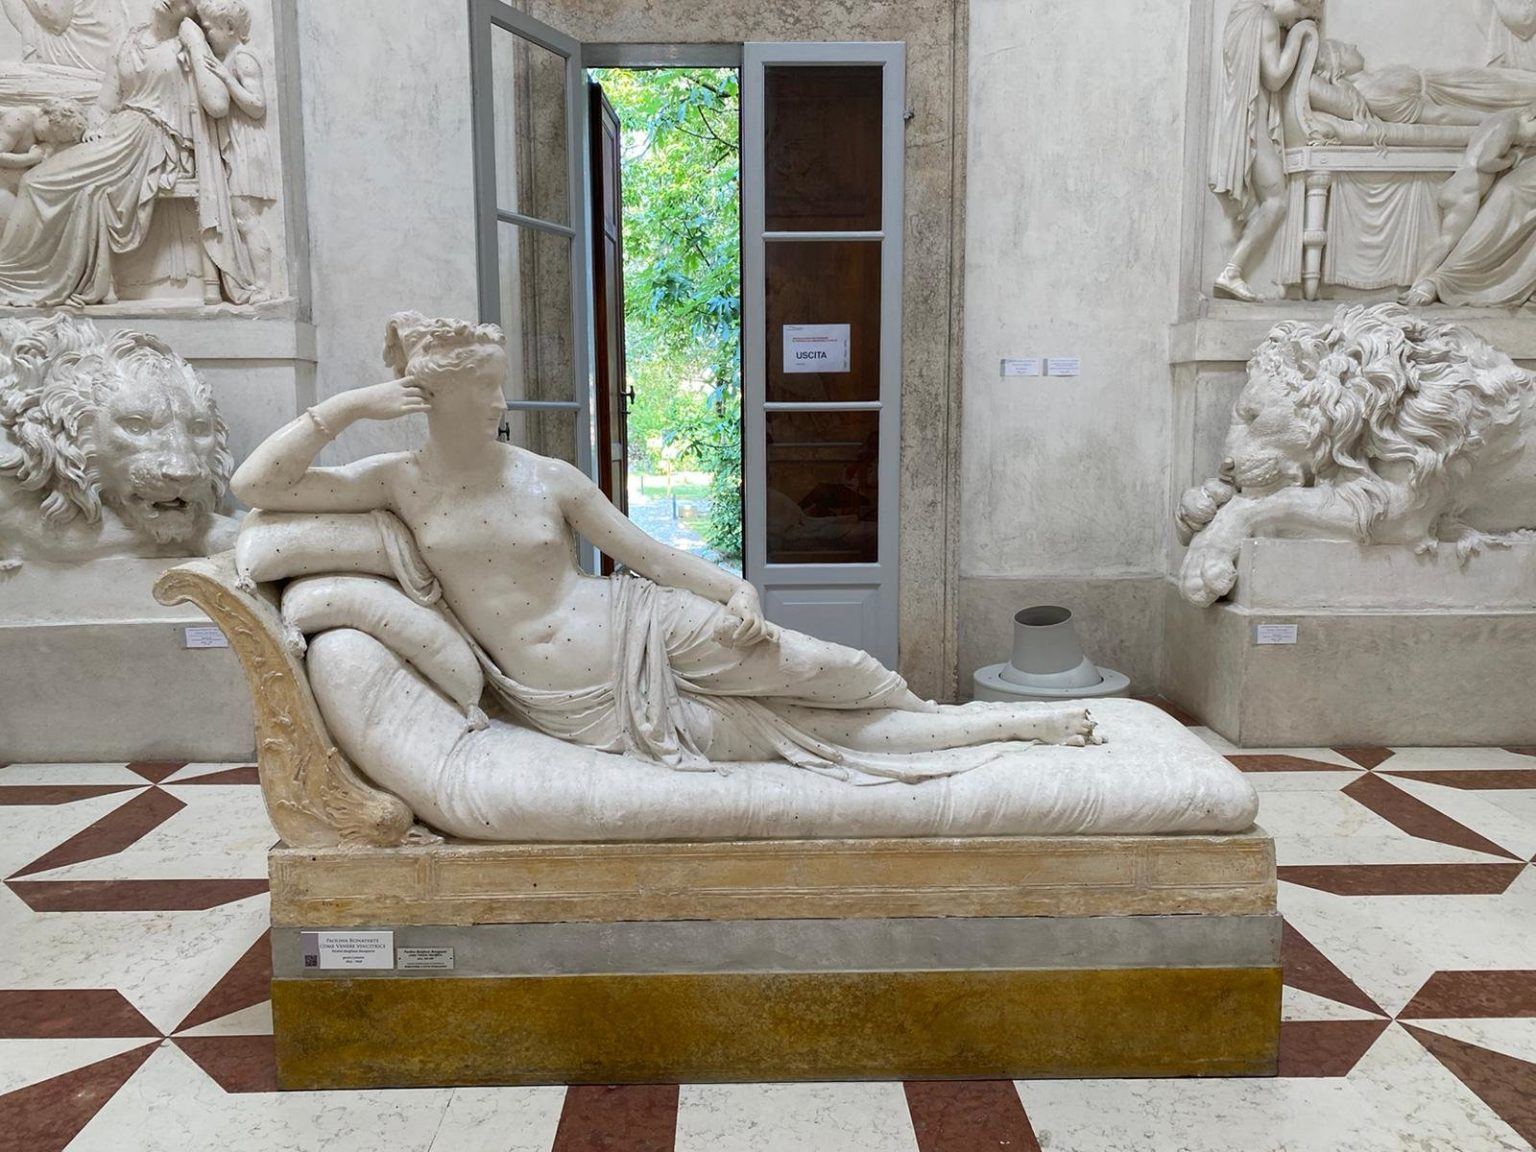 A Clumsy Museum Visitor Snapped the Toes Off a Historic Sculpture in Italy While Trying to Pose for a Selfie in Its Lap